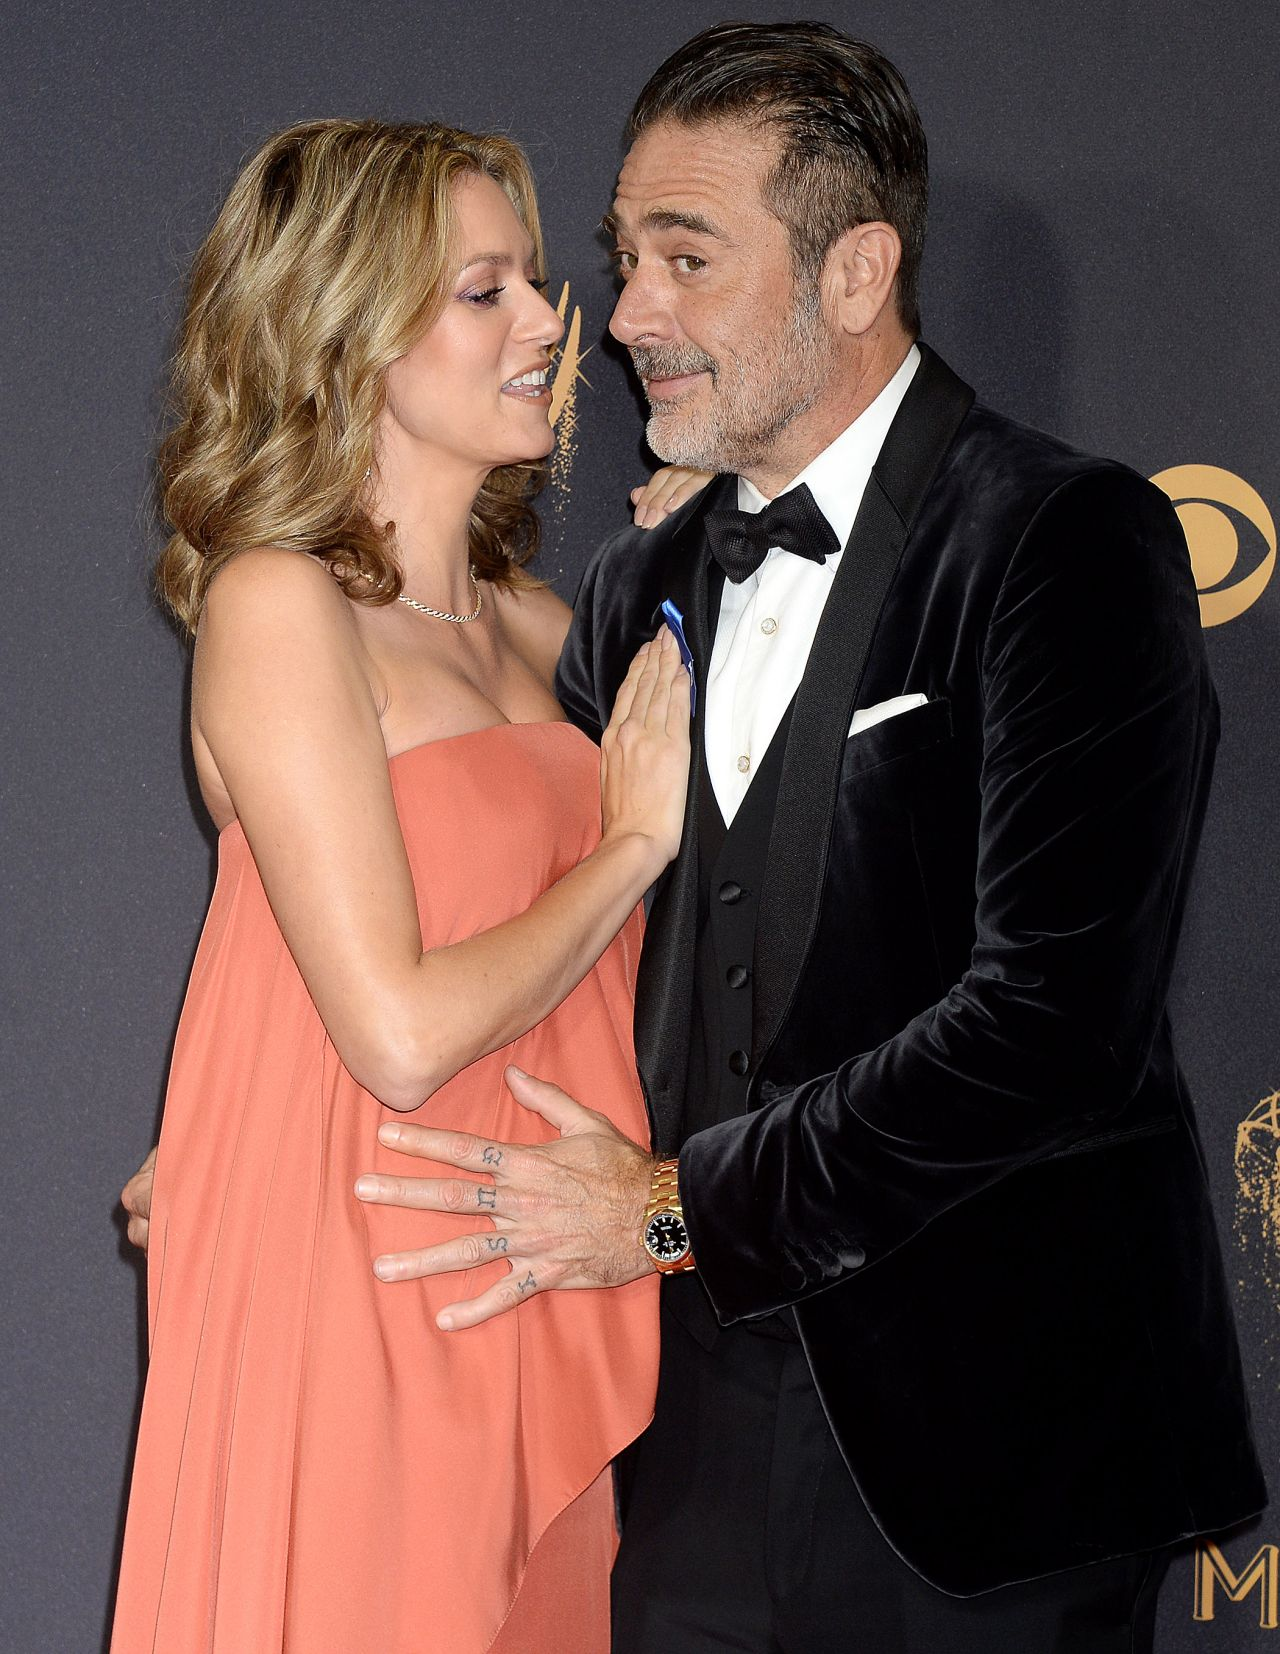 Hilarie Burton Husband Related Keywords - Hilarie Burton ... Hilarie Burton Wedding Ring